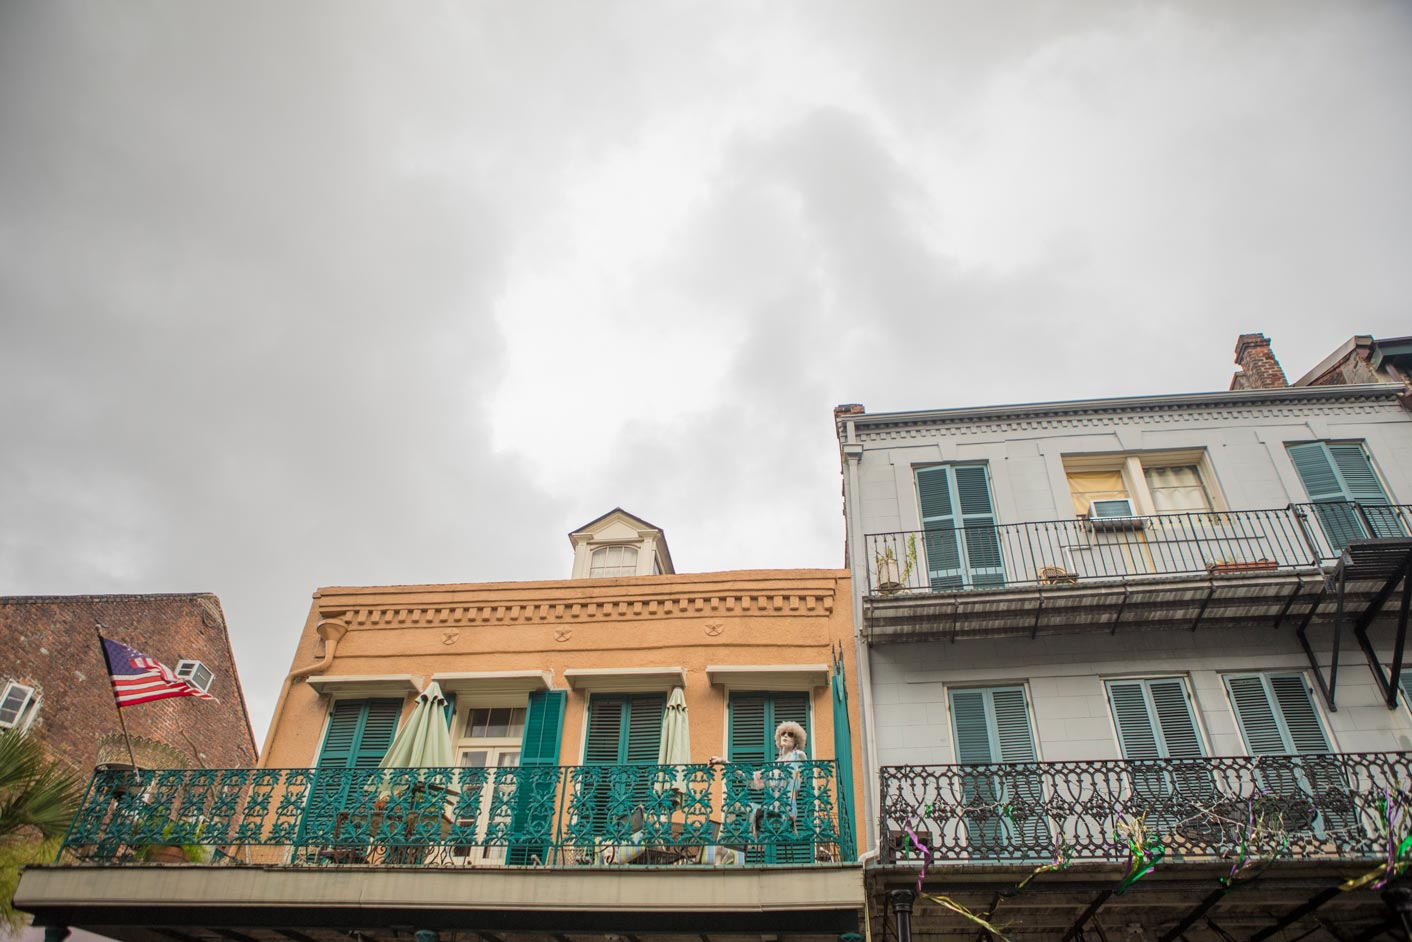 What's for sale in the French Quarter